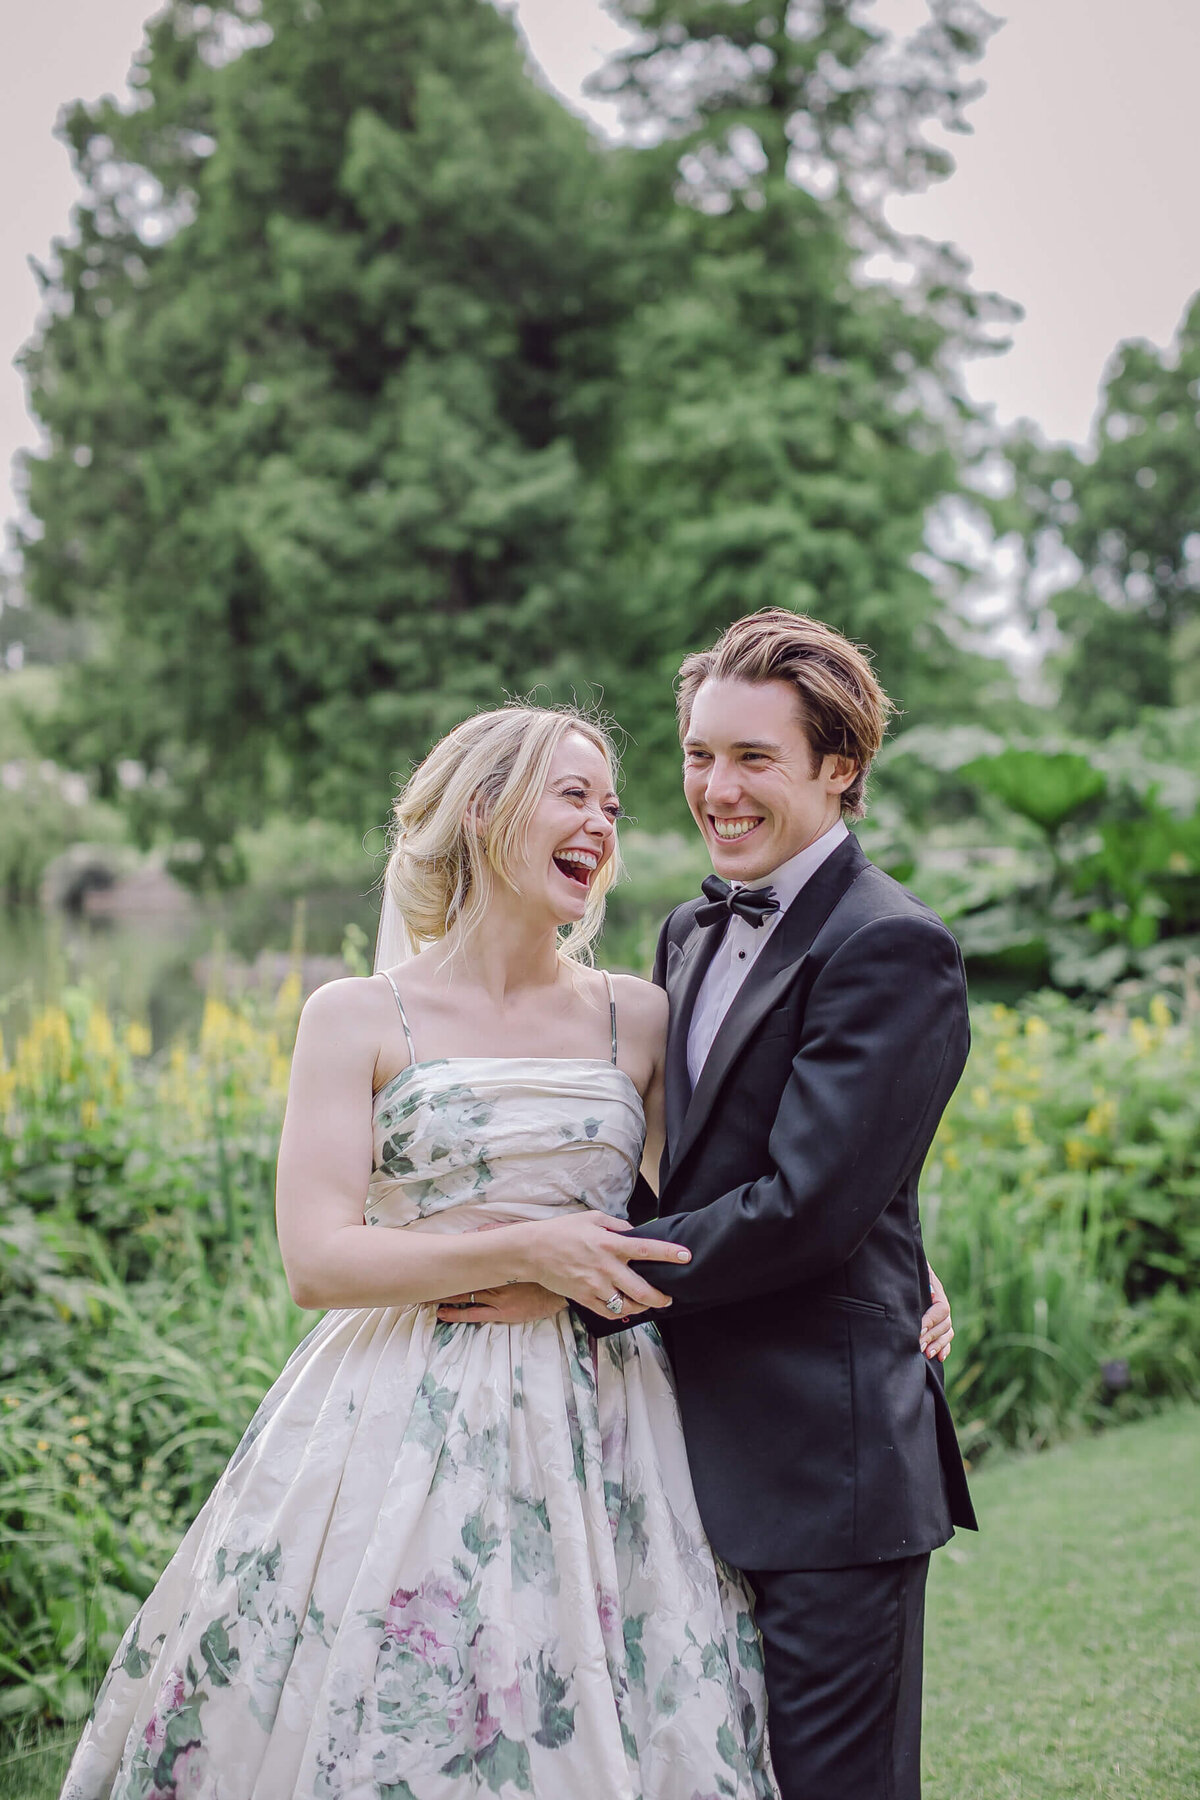 Ellie&Seb, July 06, 2019, 551